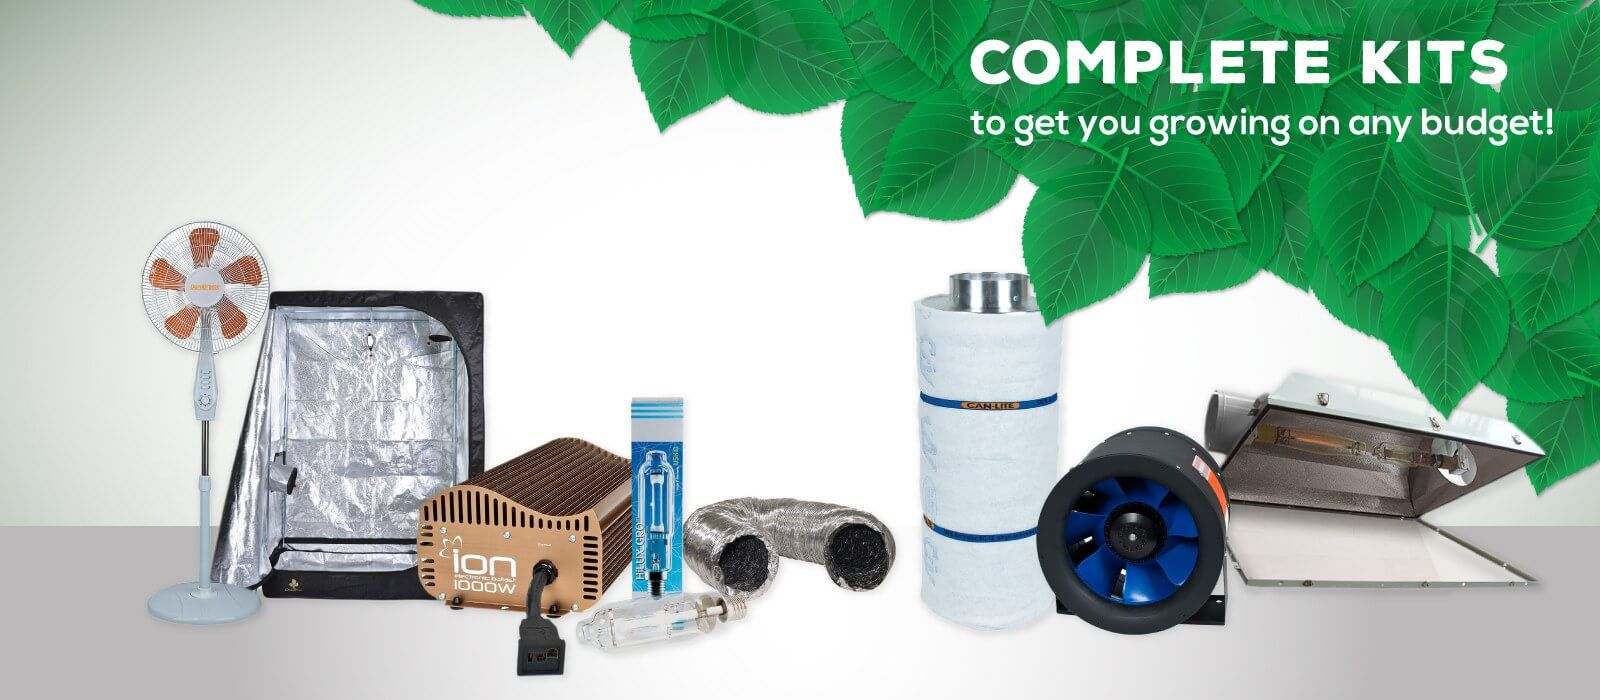 Complete Grow Kits for your Indoor Garden